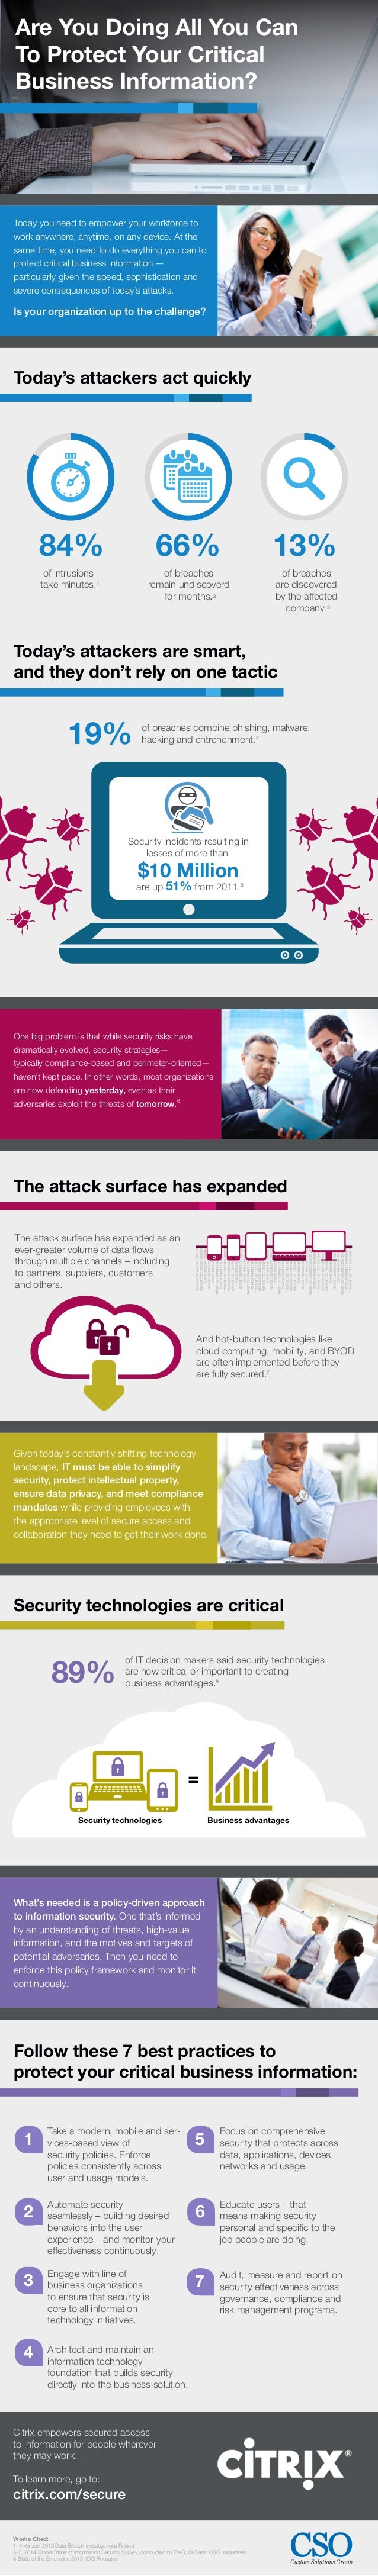 Are You Doing All You Can To Protect Your Critical Business Information?  Today you need to empower your workforce to work...